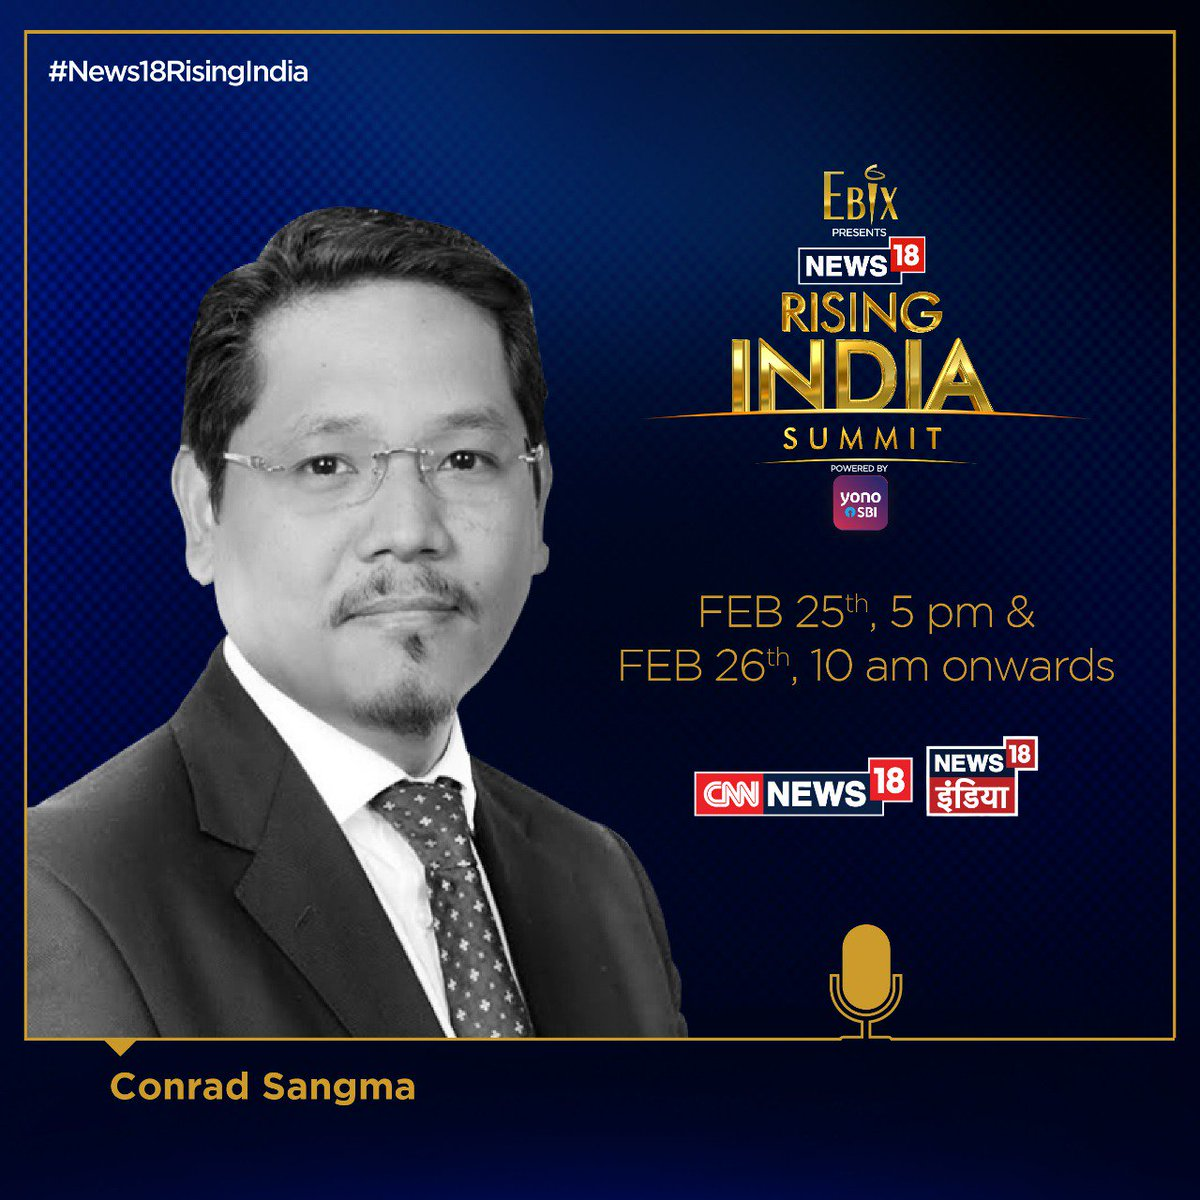 Don't miss out on #News18RisingIndia Summit 2019.   Stay Tuned.  @EbixInc @TheOfficialSBI #YONOSBI @UPGovt @OfficialJioTV  @SangmaConrad